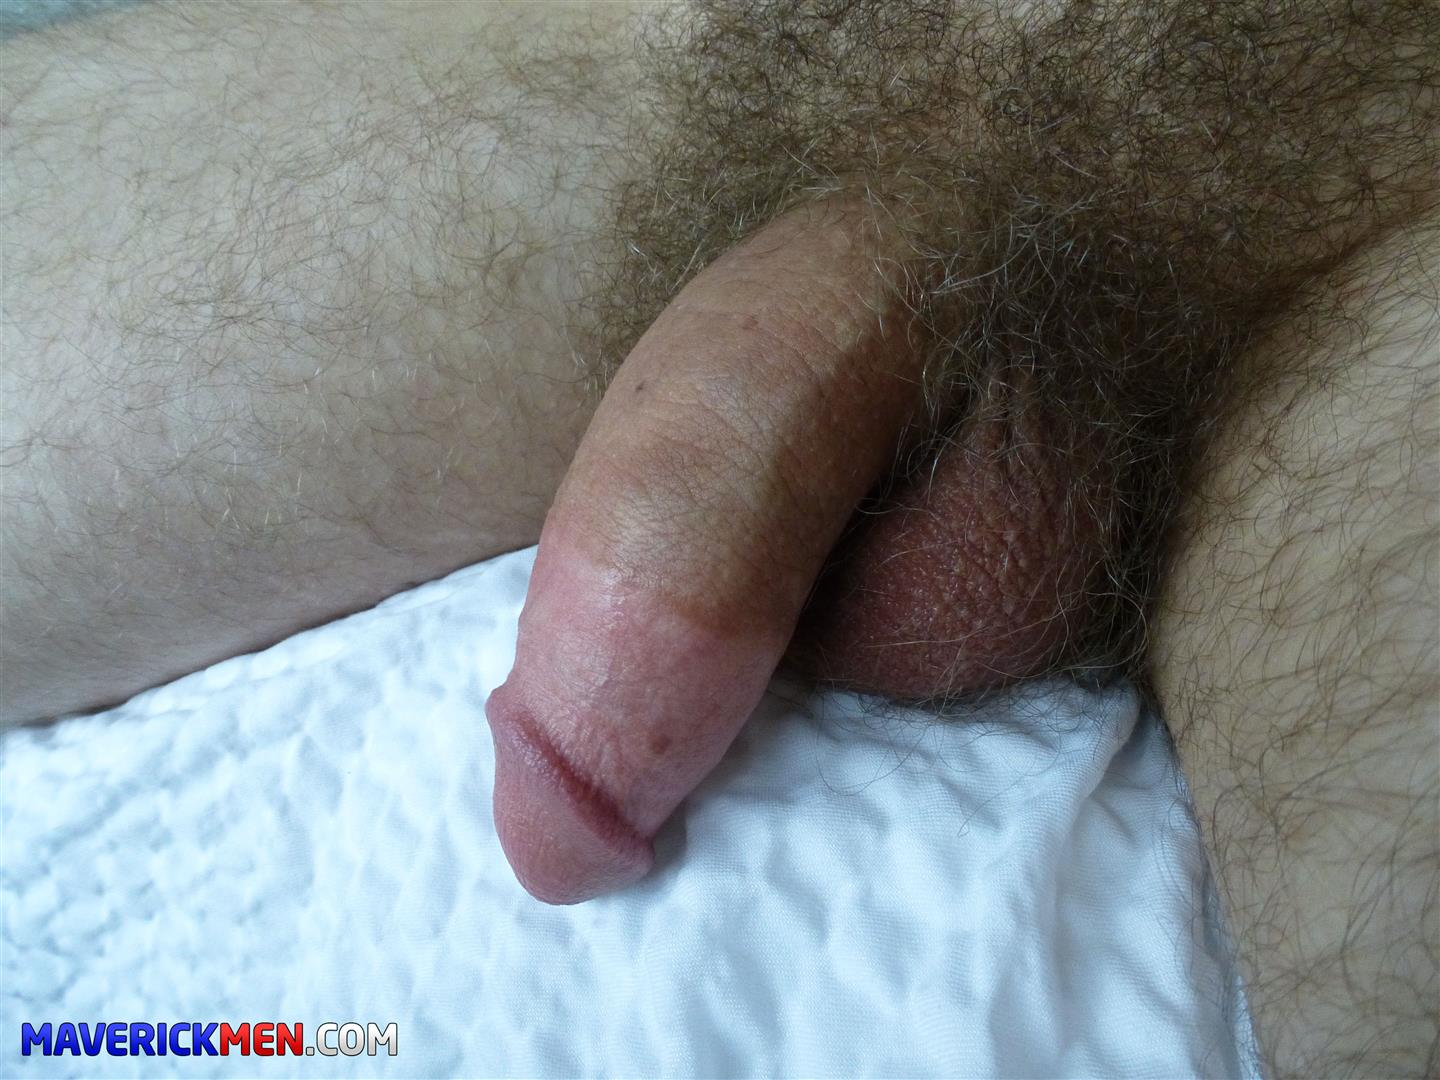 Maverick-Men-Little-Bobby-Hairy-Ass-Virgin-Gets-Barebacked-Amateur-Gay-Porn-05 Hairy Ass Young Virgin Gets Barebacked By Two Muscle Daddies